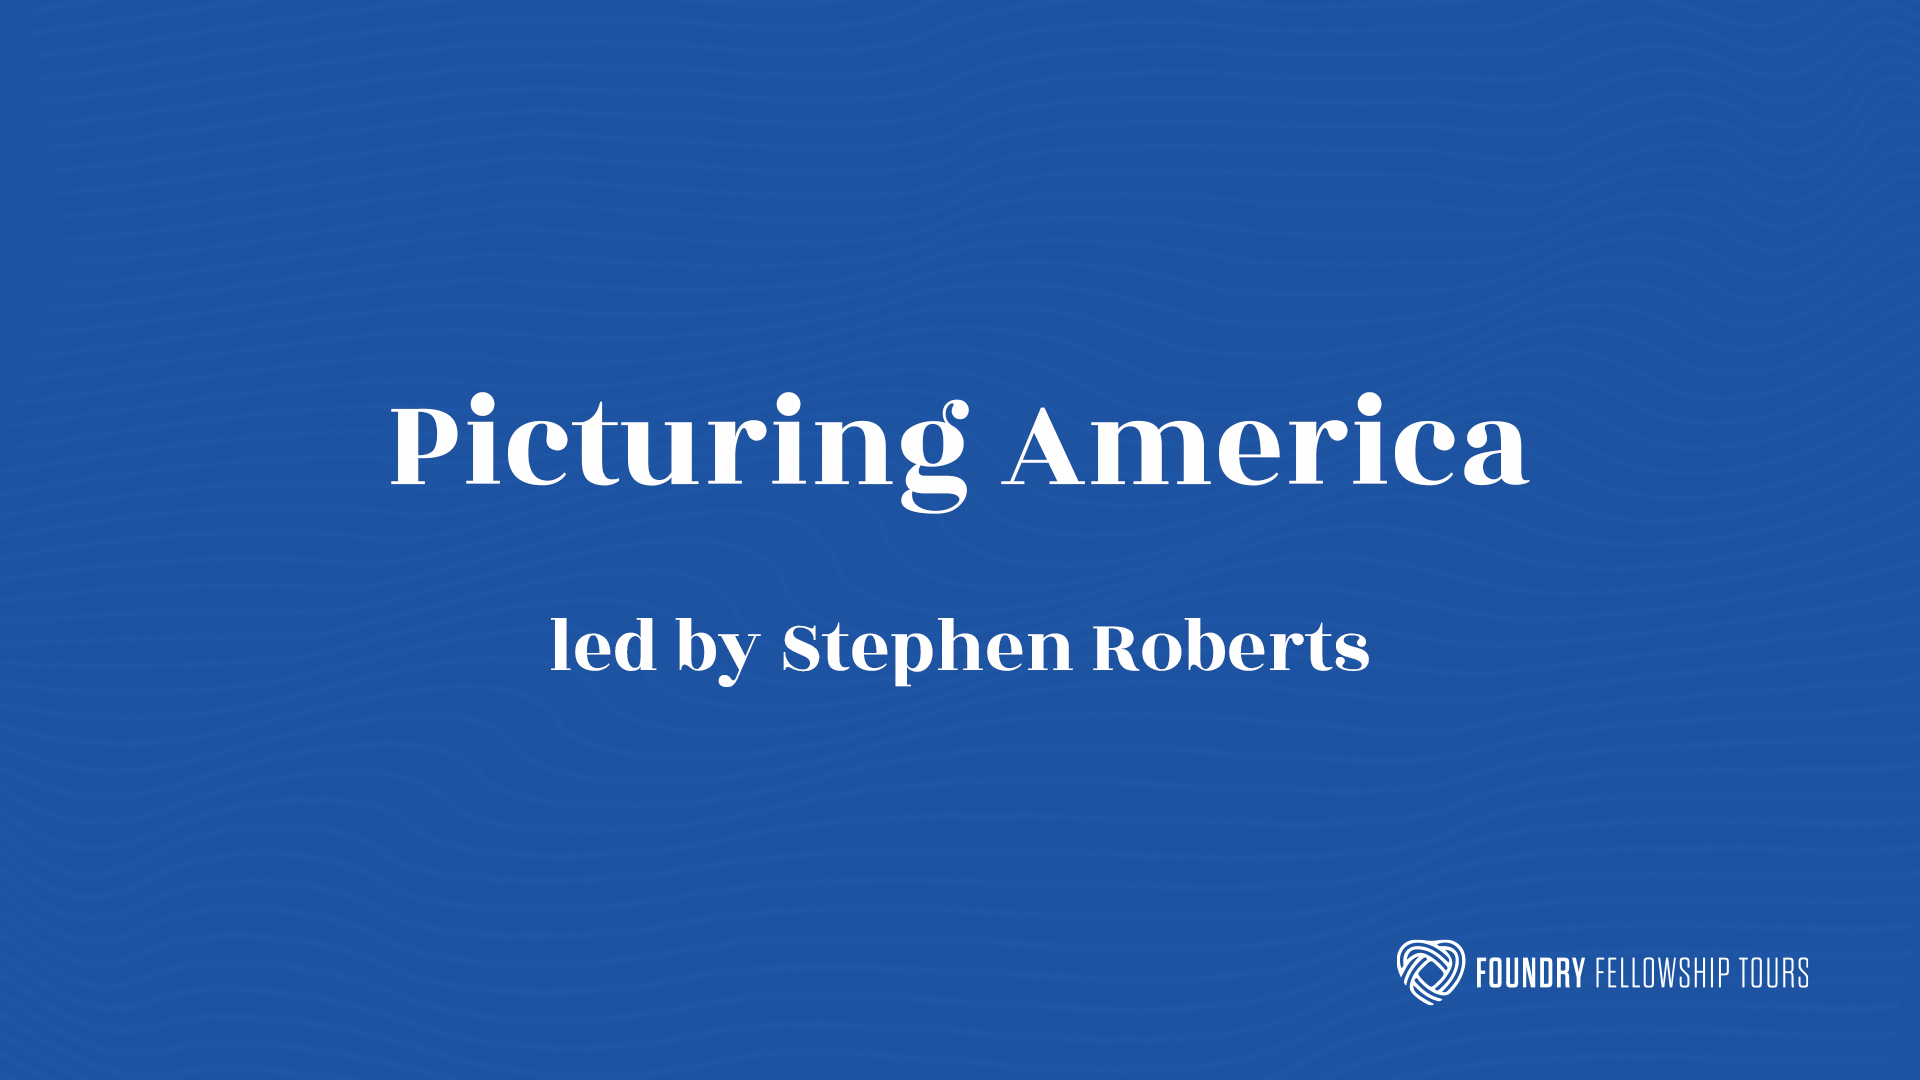 Picturing America Through the Eyes of Artists